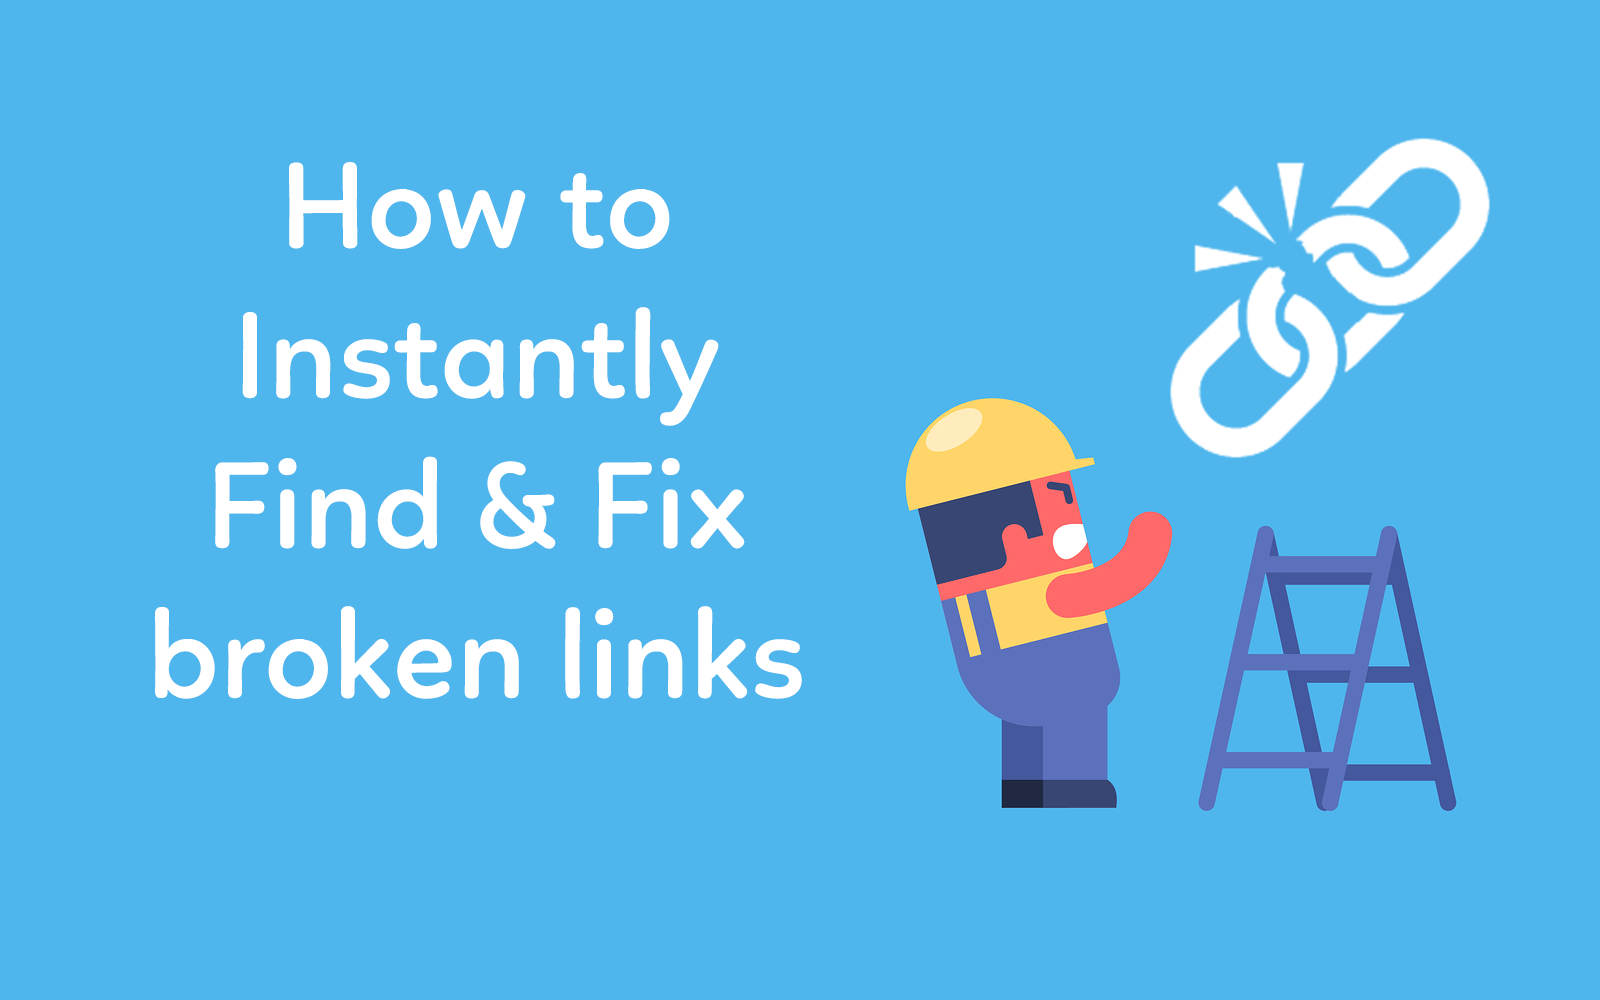 broken links